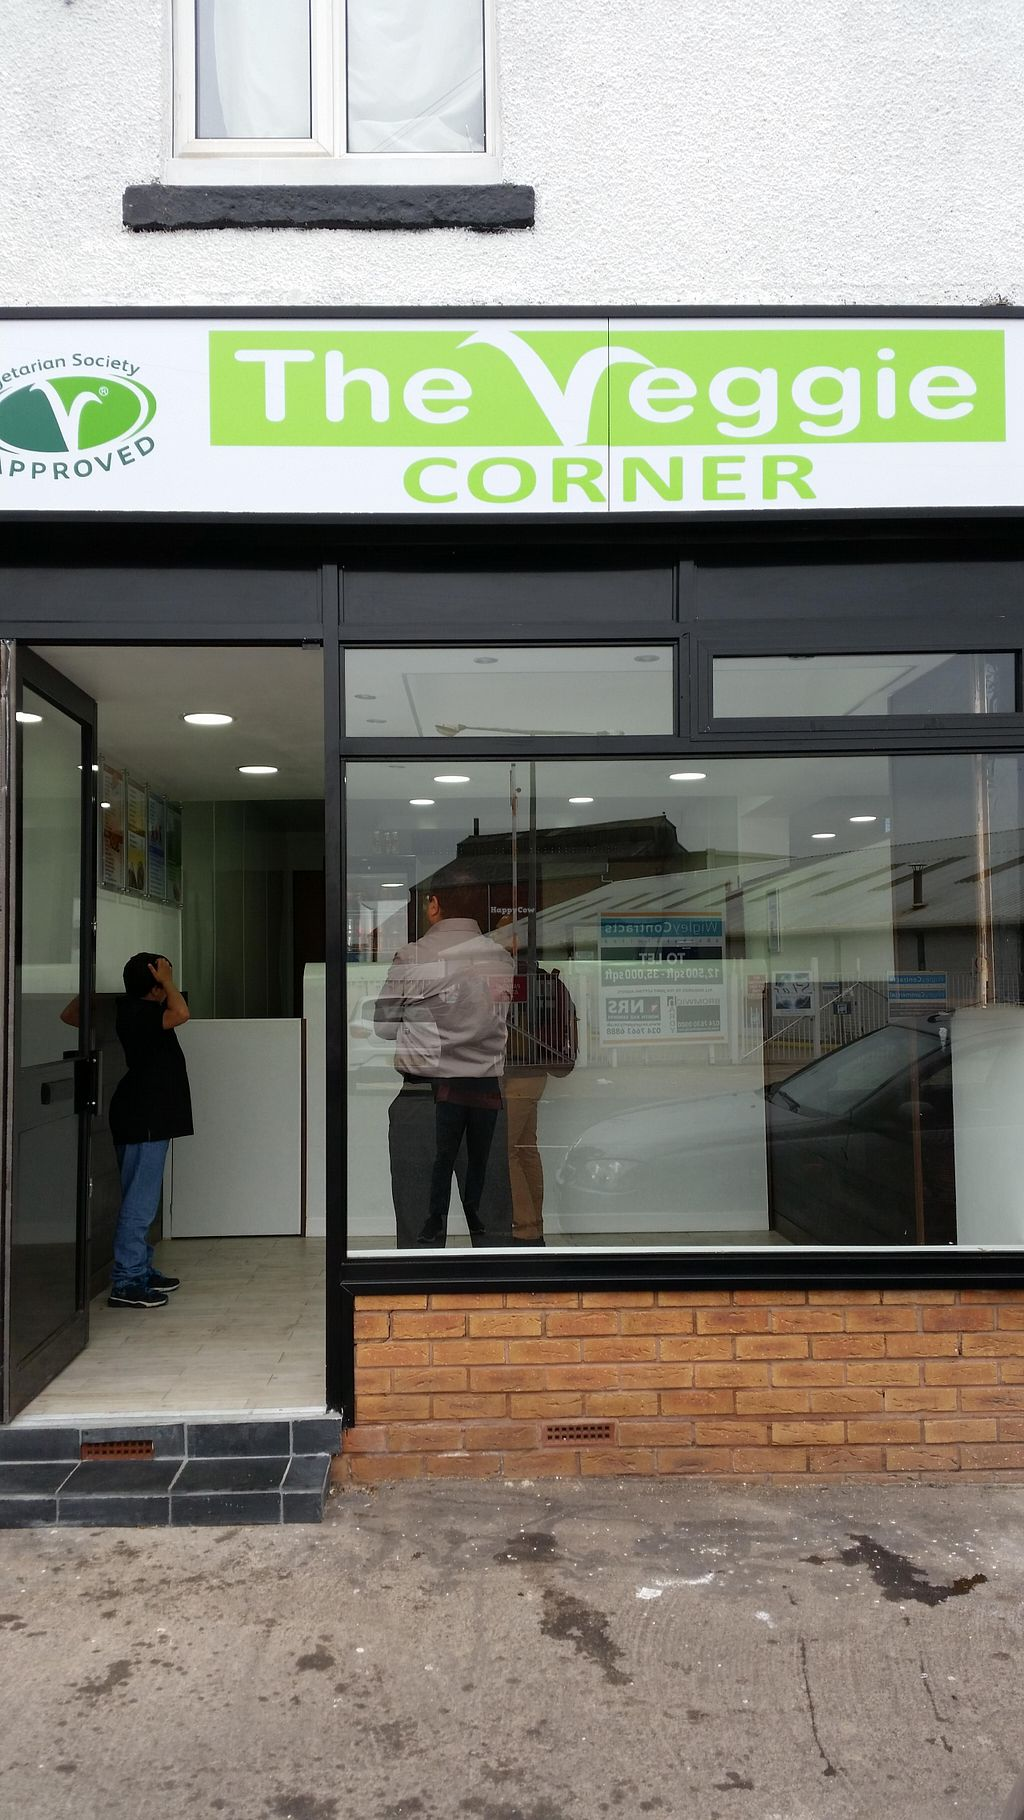 """Photo of The Veggie Corner  by <a href=""""/members/profile/konlish"""">konlish</a> <br/>outside <br/> August 15, 2015  - <a href='/contact/abuse/image/52193/113654'>Report</a>"""